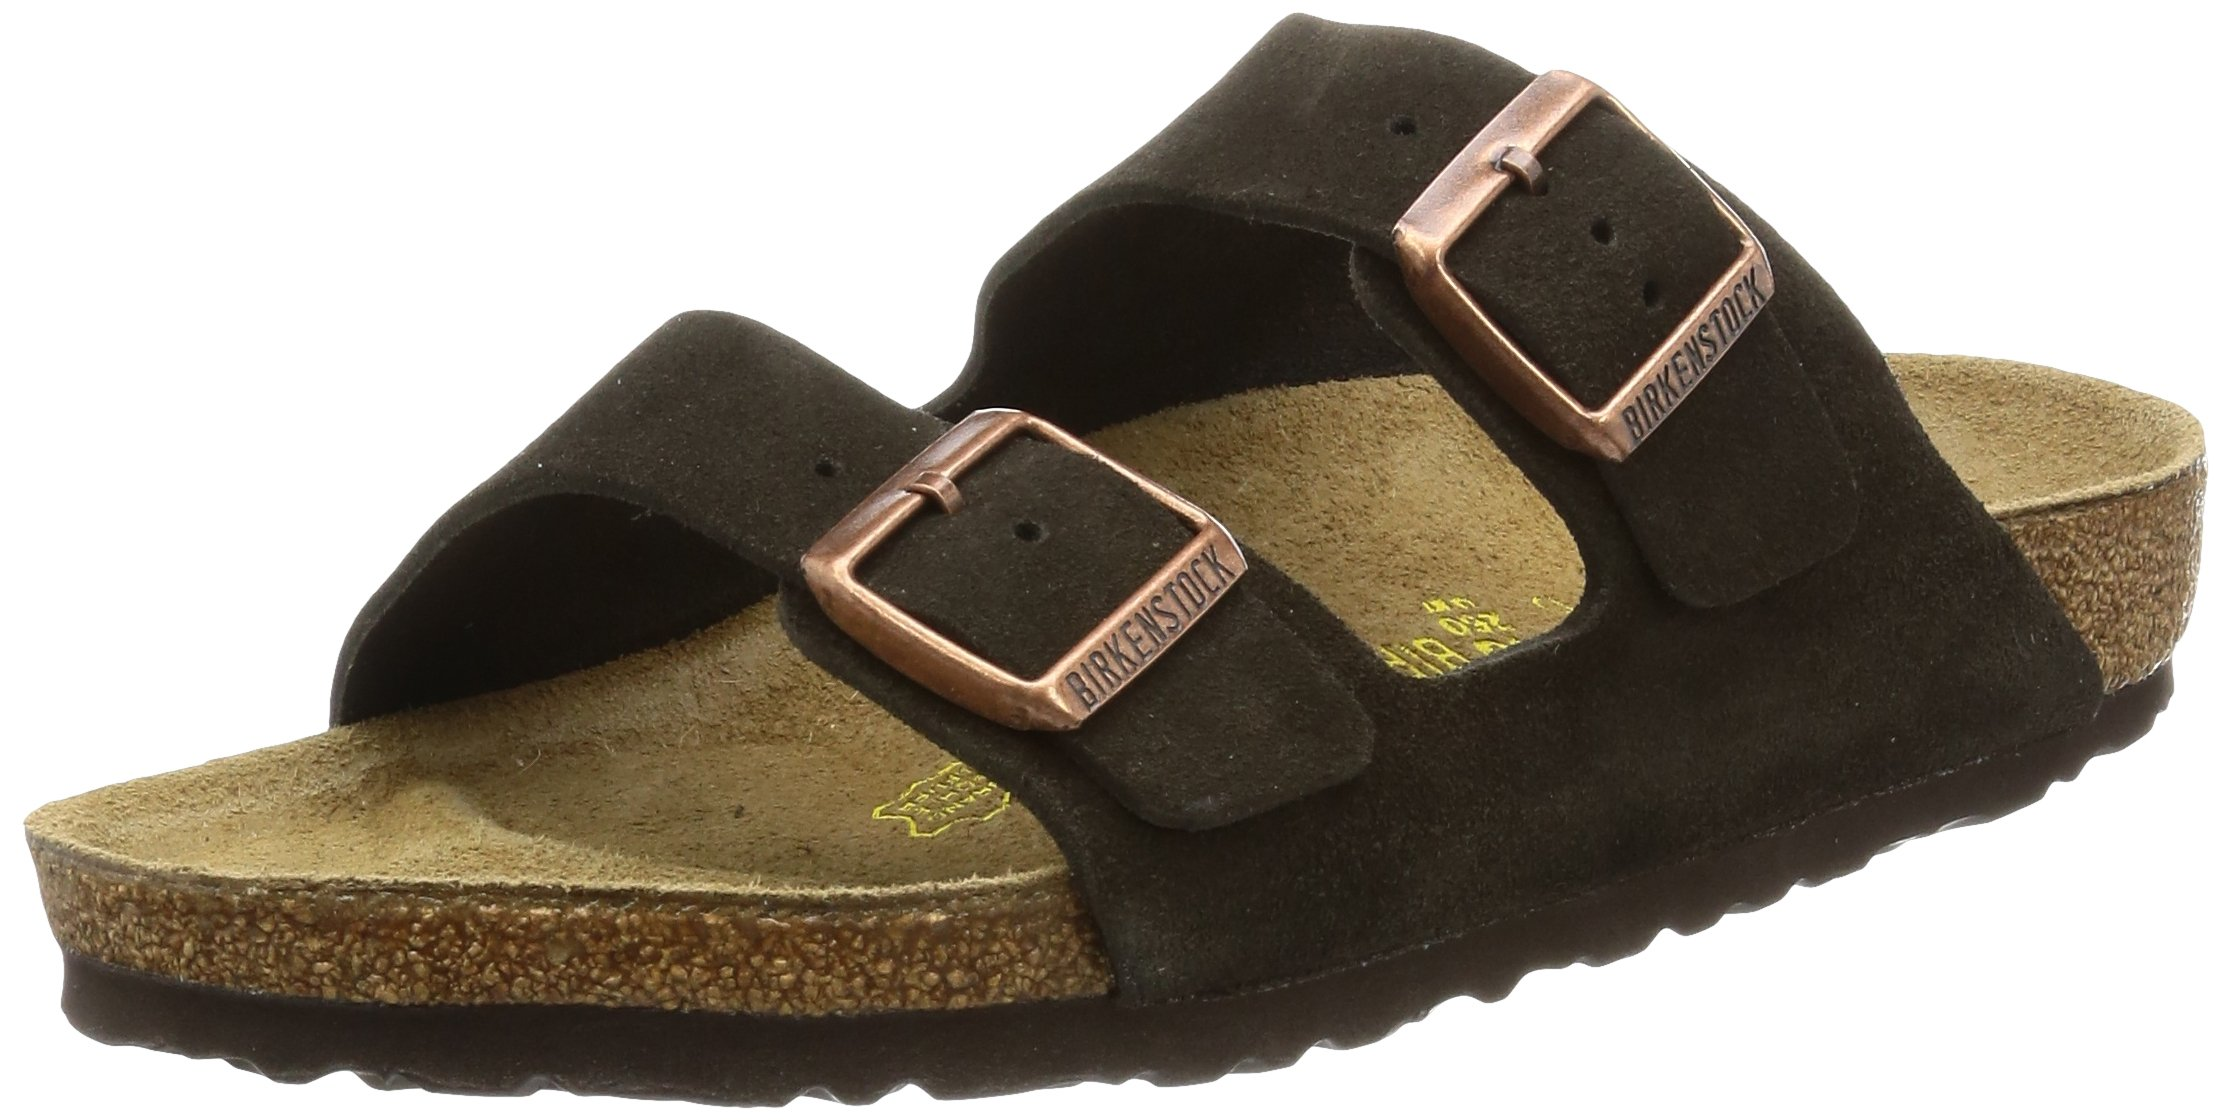 Birkenstock womens Arizona in Mocha from Leather Sandals 41.0 EU W